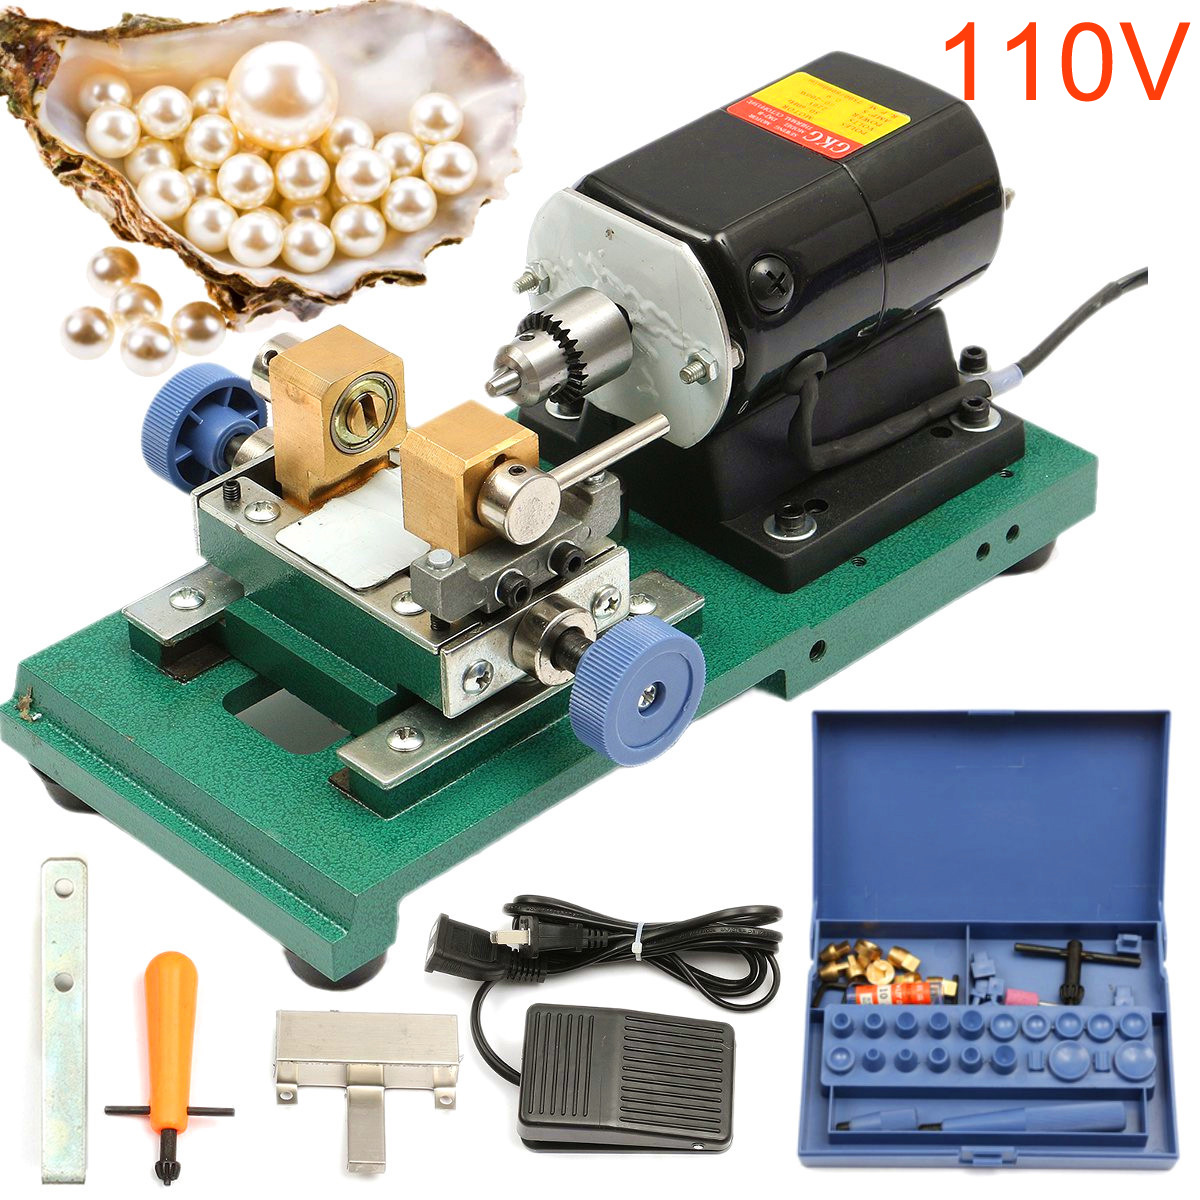 Drillpro 110V 200W DC 24V Mini Lathe Beads Machine Polish Woodworking DIY Tools Set